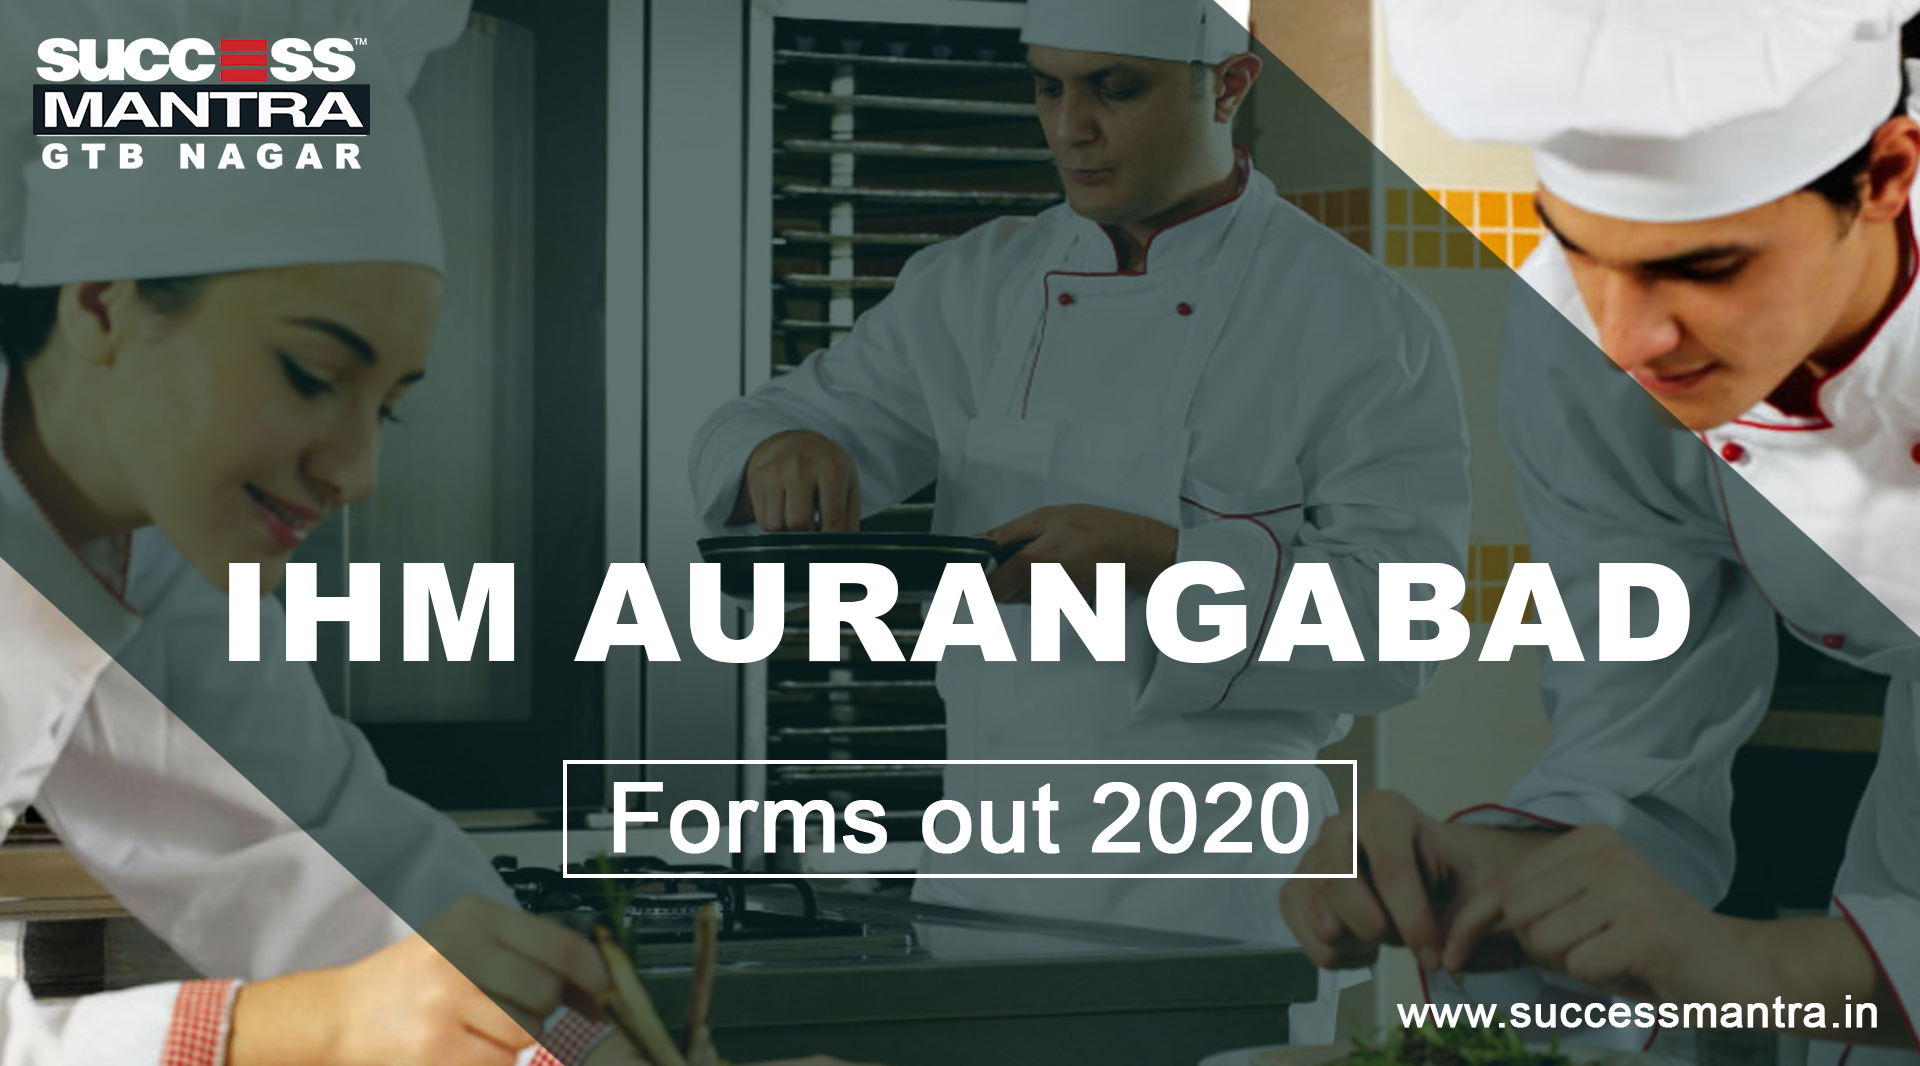 IHM Aurangabad, IHM Aurangabad Selection Procedure, IHM Aurangabad Eligibility Criteria, IHM Aurangabad Getting Ready, IHM Aurangabad Personal Interview, IHM Aurangabad Admission Call, IHM Aurangabad Important Note, MGM Hotel Management Aurangabad Fees, List Of Hotel Management Colleges In Aurangabad, IHM Aurangabad Ranking, IHM Aurangabad Placement Packages, IHM Aurangabad Admission 2020, IHM Aurangabad Address, TAJ Hotel Management Admission 2020, IHM Aurangabad Review, HM Coaching, best coaching for HM in Delhi, Success Mantra Coaching Institute for HM for admission in IHM